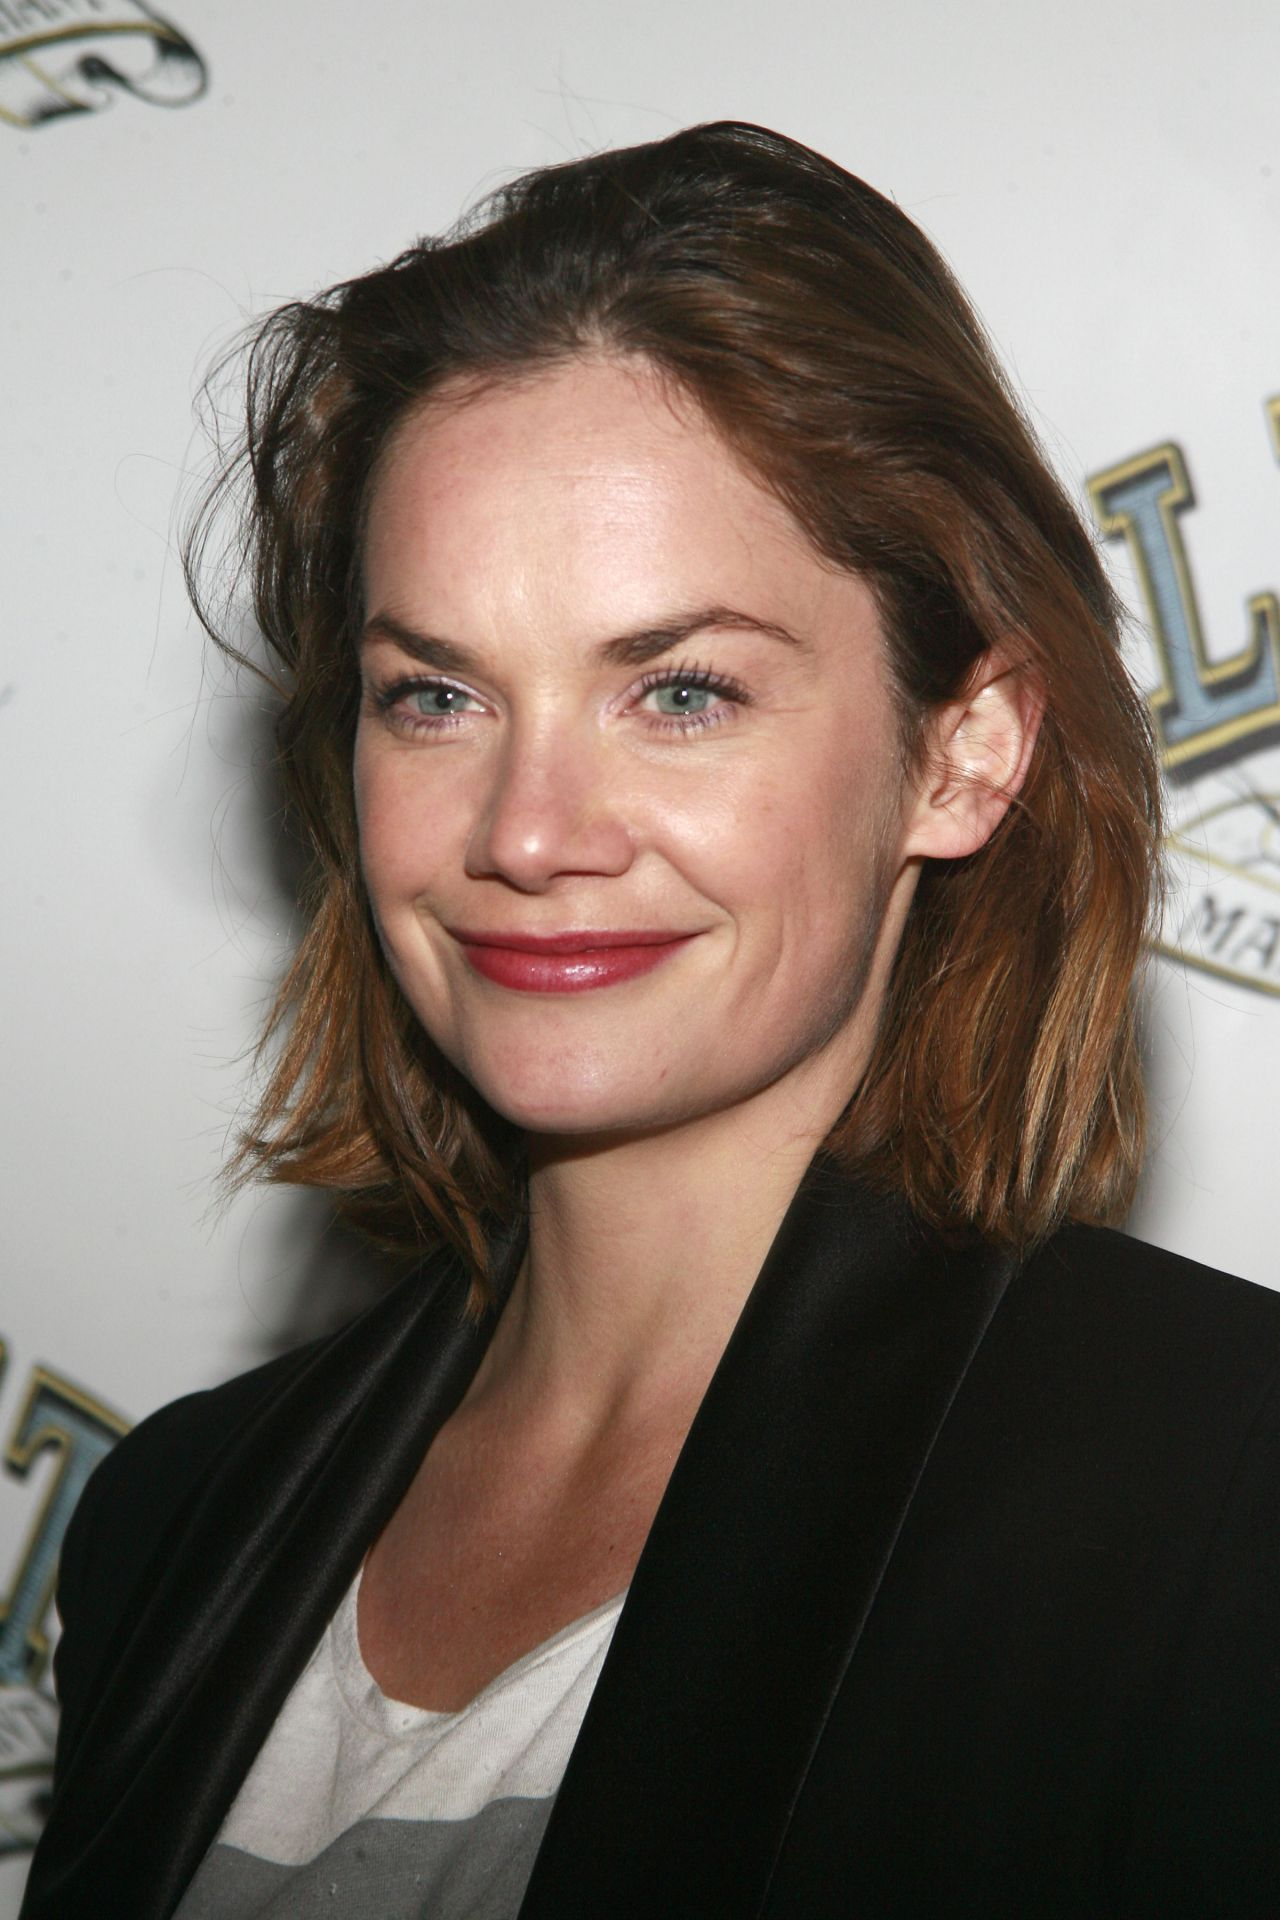 Ruth wilson ruth wilson pinterest ruth wilson search and google